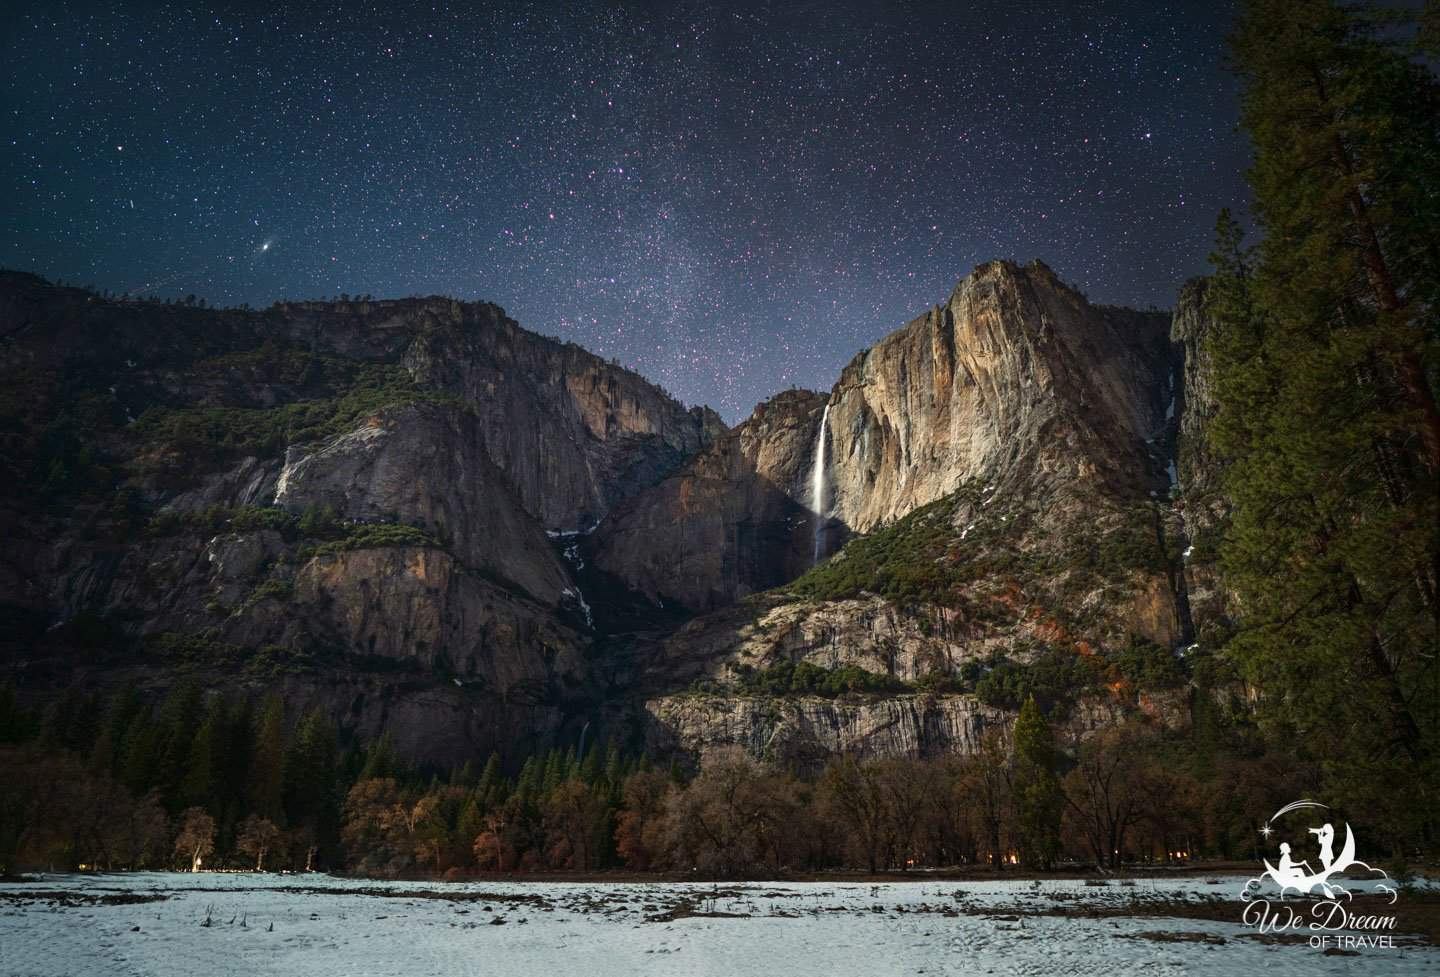 Yosemite astrophotography featuring Upper Yosemite Falls in moonlight under the stars.